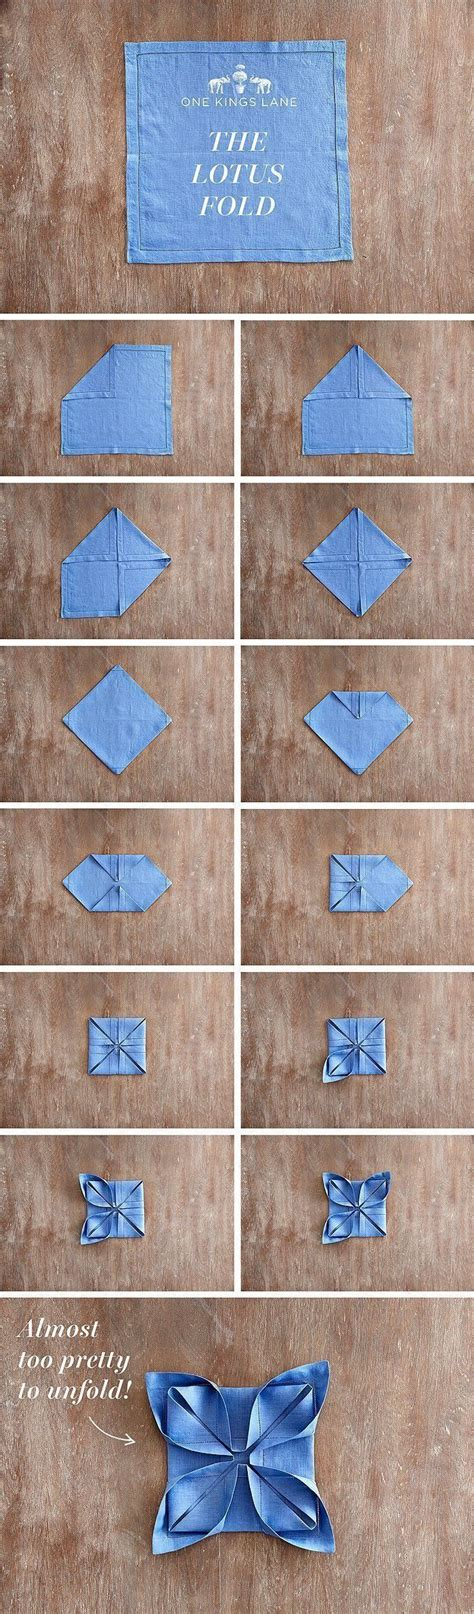 Paper Folding Ideas - 25 napkin folding techniques that will transform your